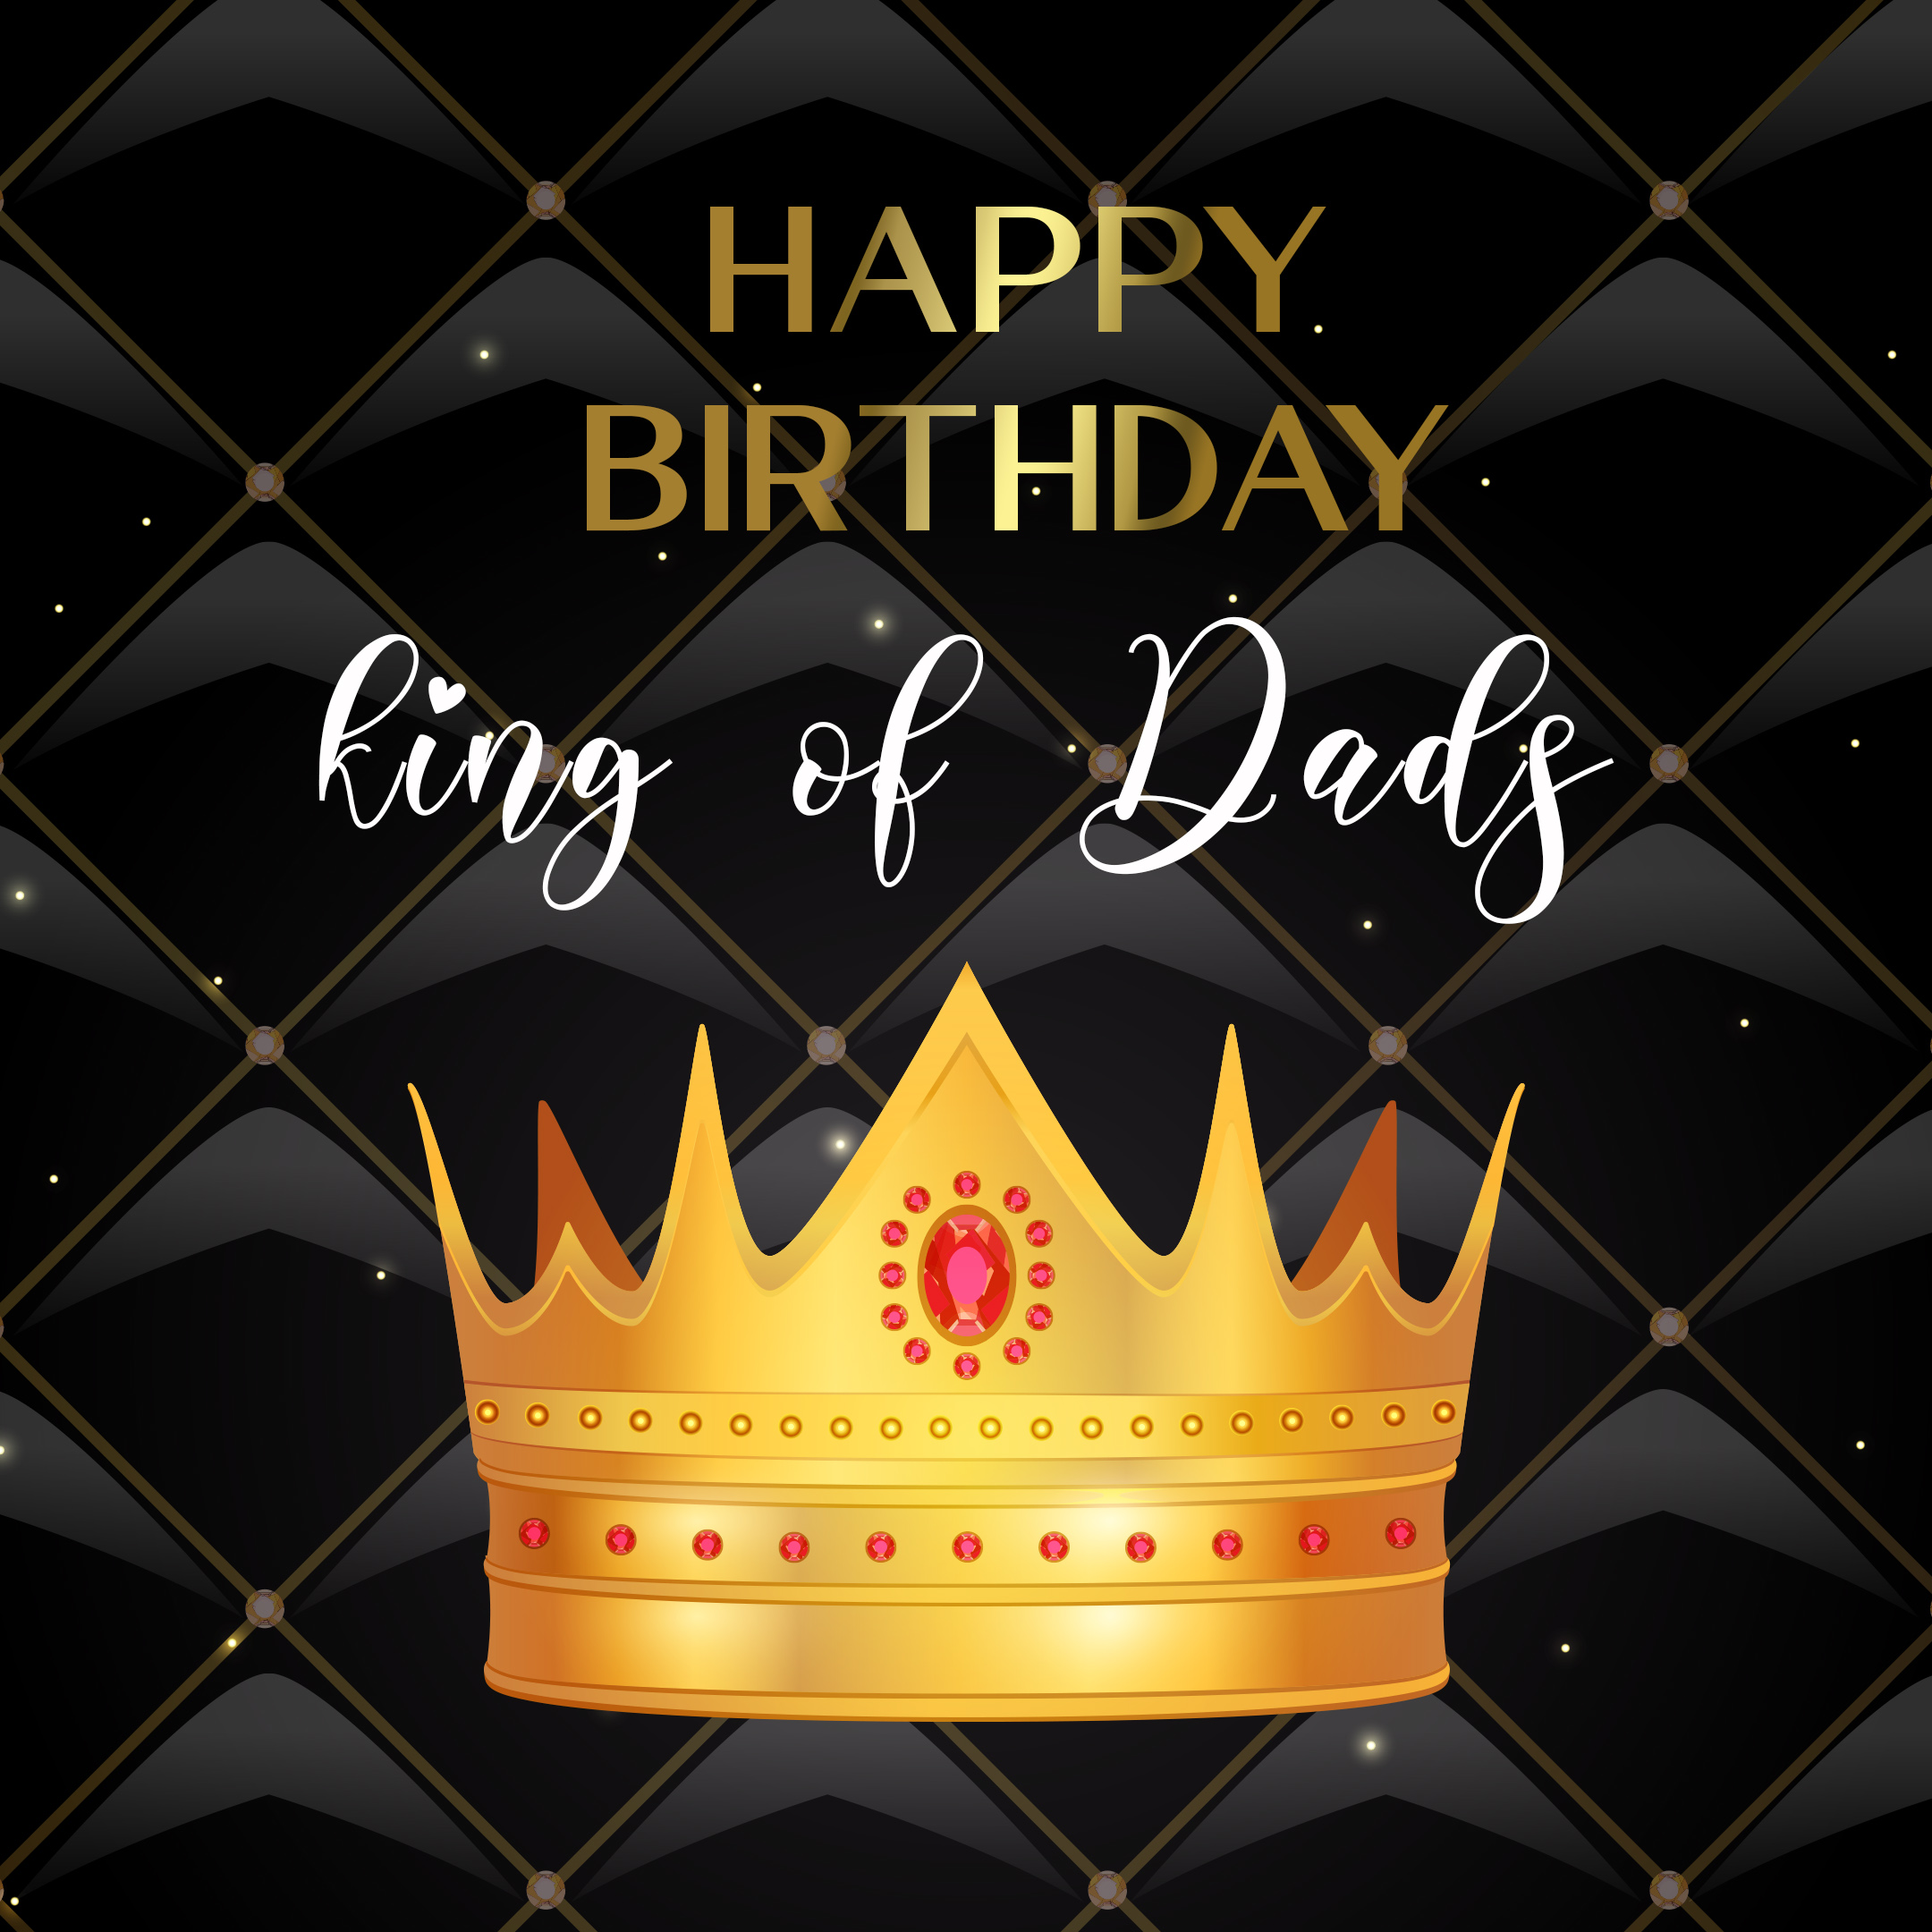 Free Happy Birthday Image For Dad With Crown - birthdayimg.com